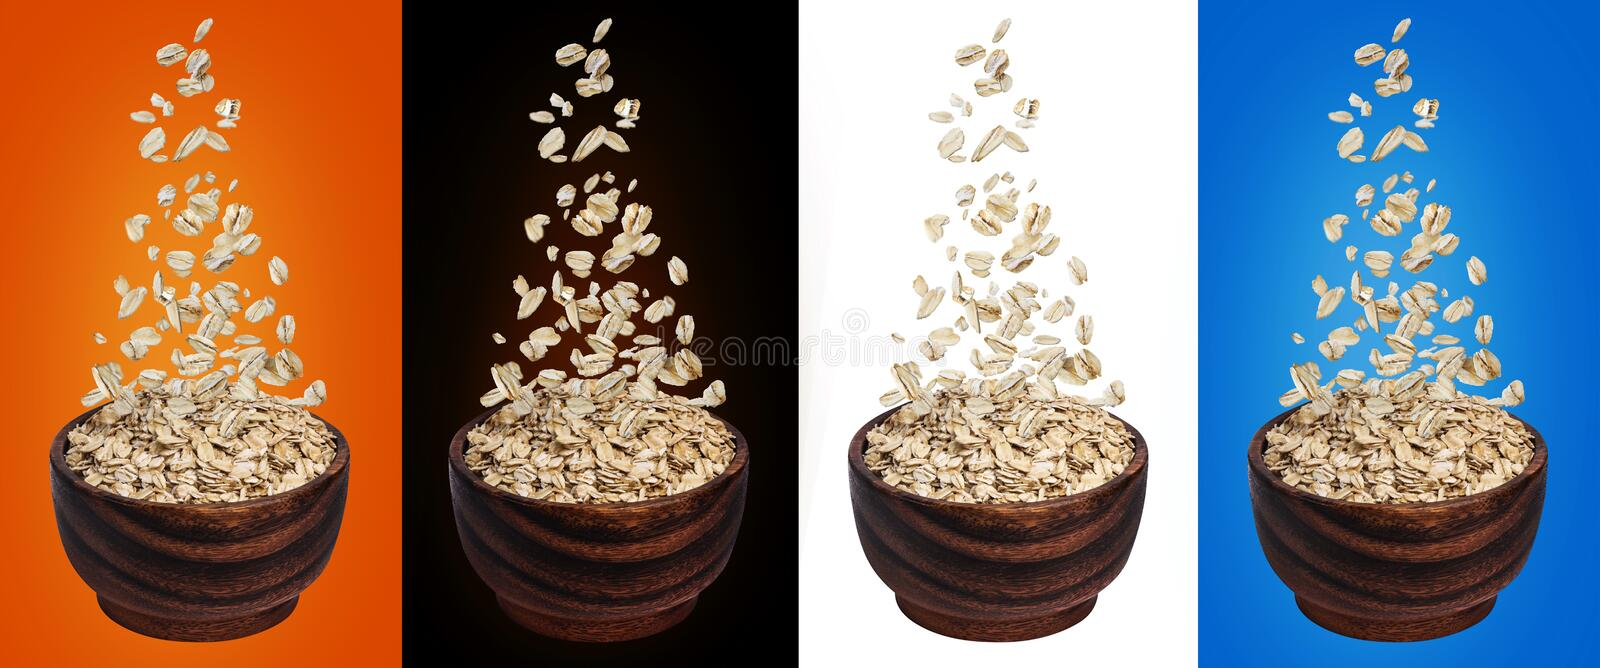 Oat flakes falling in bowl, isolated on white, black, color backgrounds, flying oats packaging concept, oatmeal grains royalty free stock photo